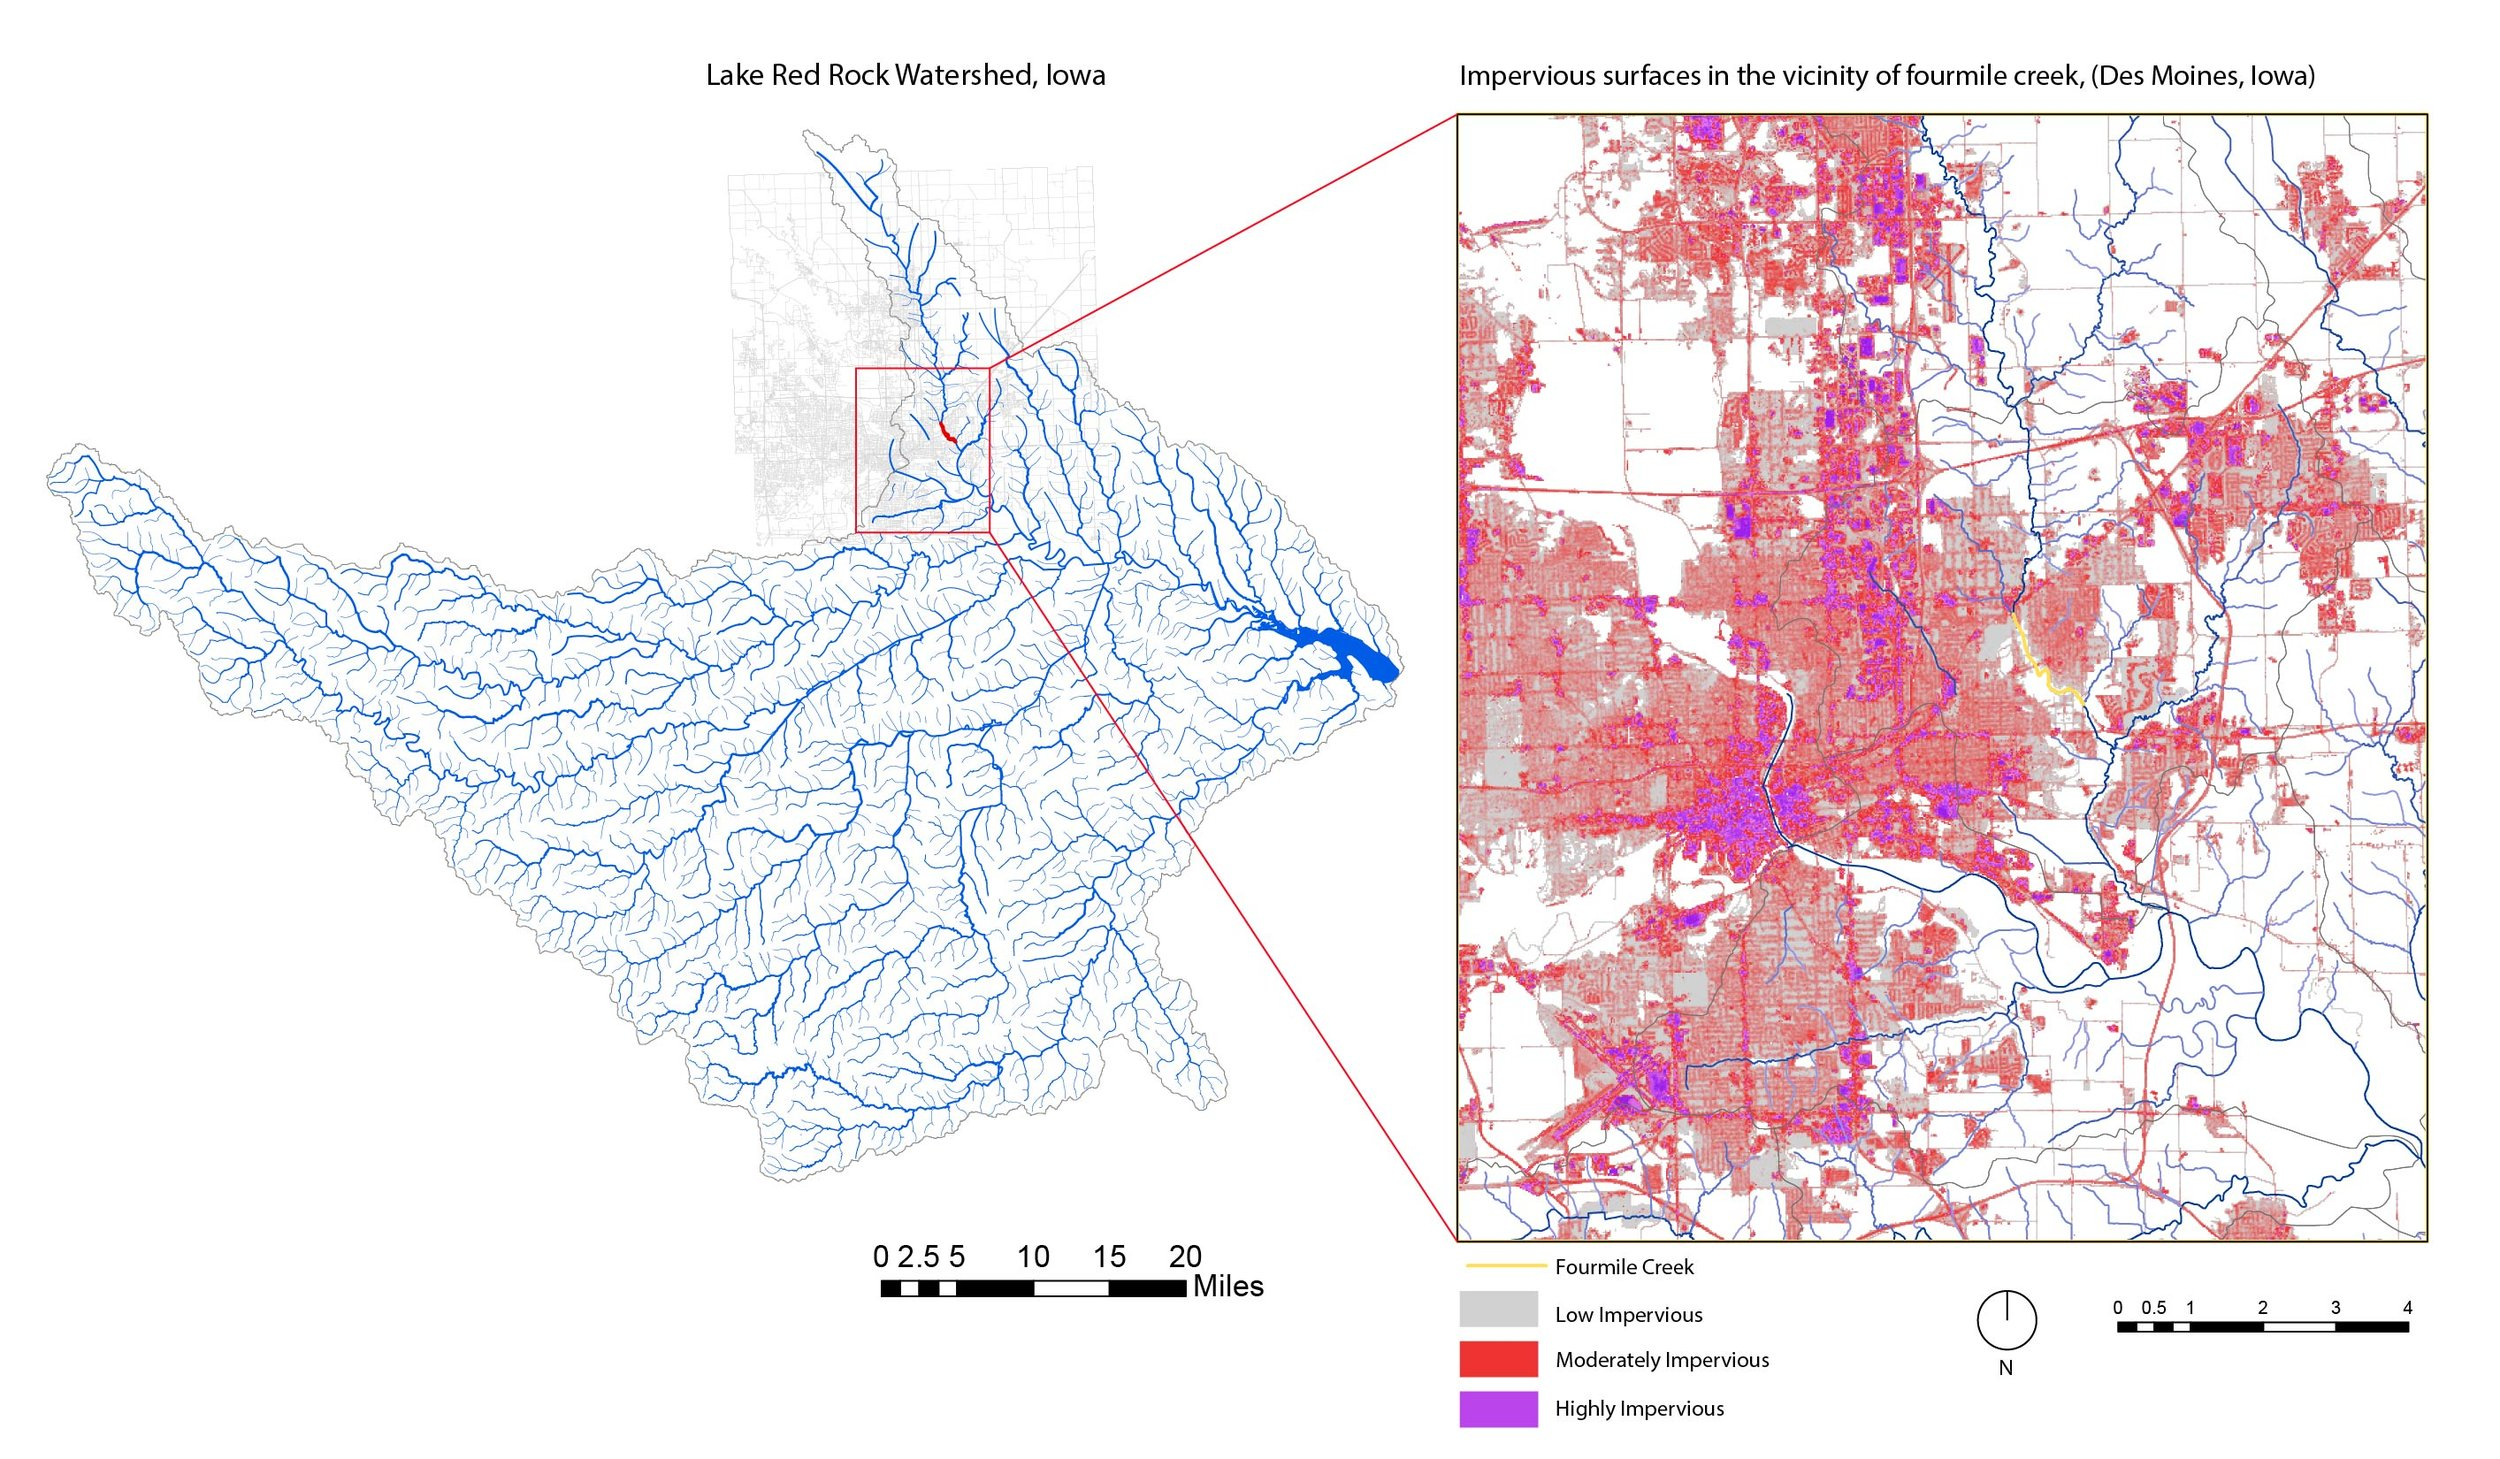 Fourmile creek in the larger context of the watershed (left) and impervious landcover analysis within Des Moines (right).